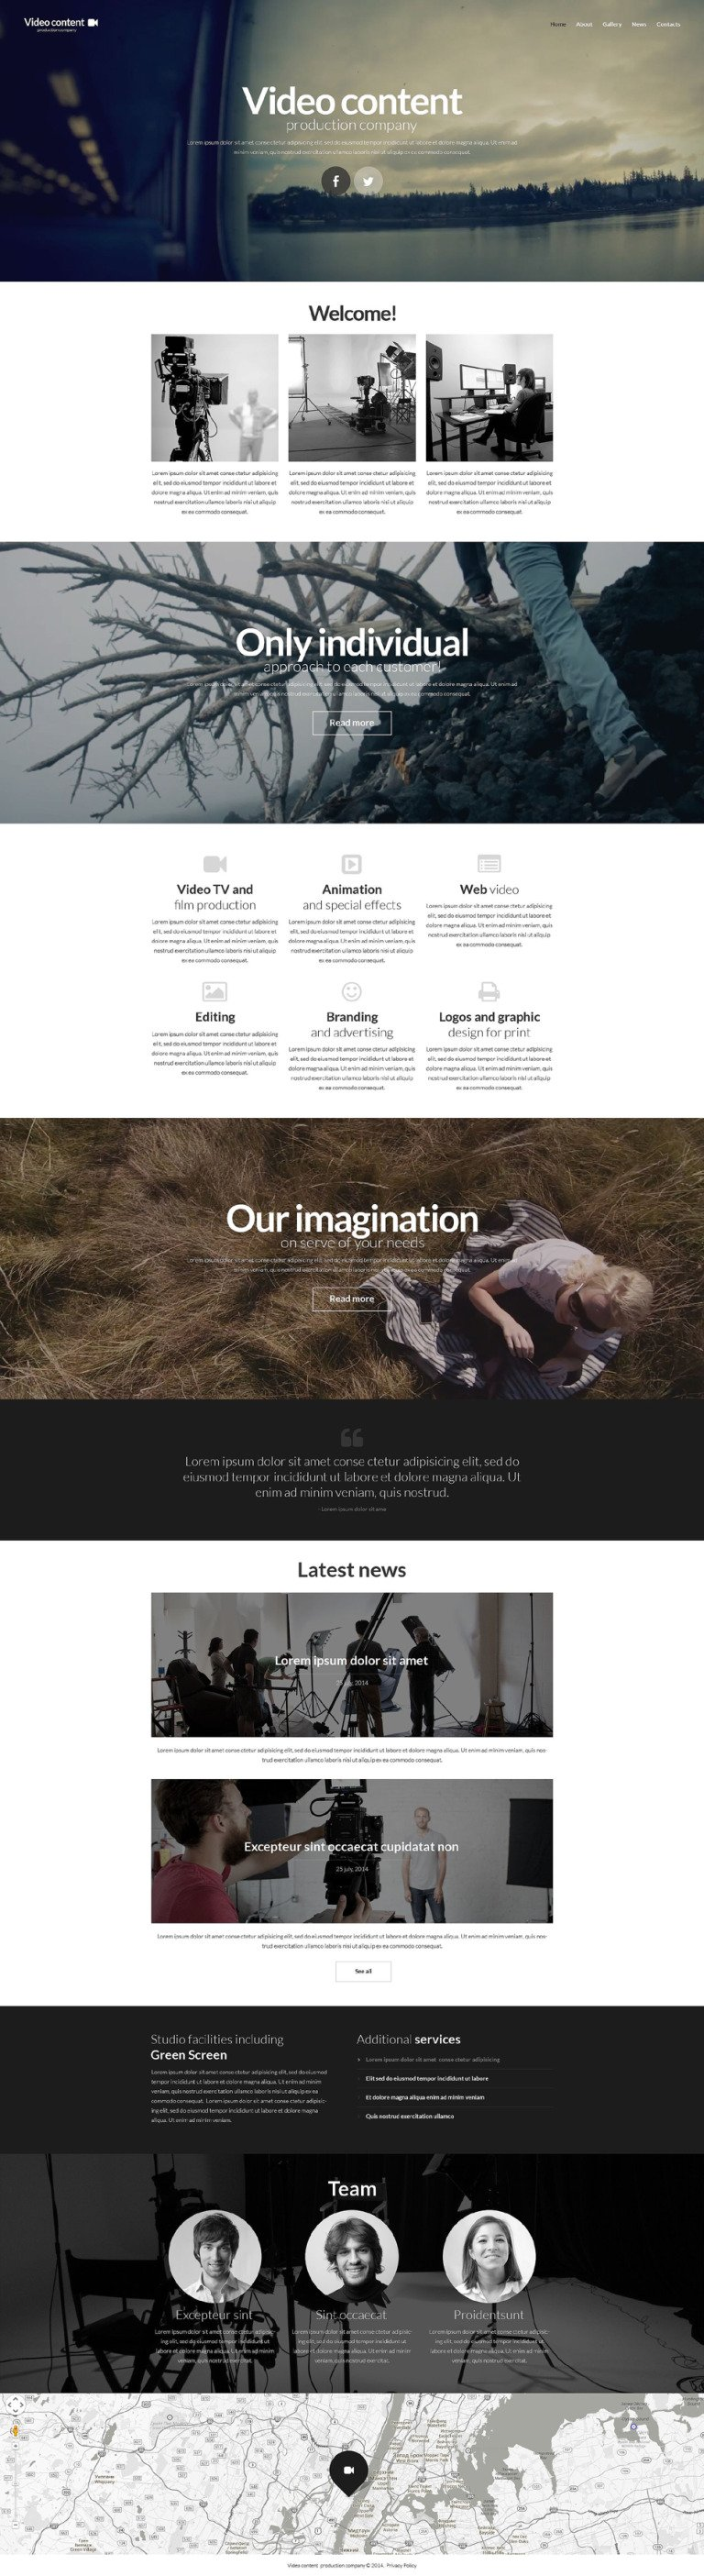 Video Production Website Template New Screenshots BIG